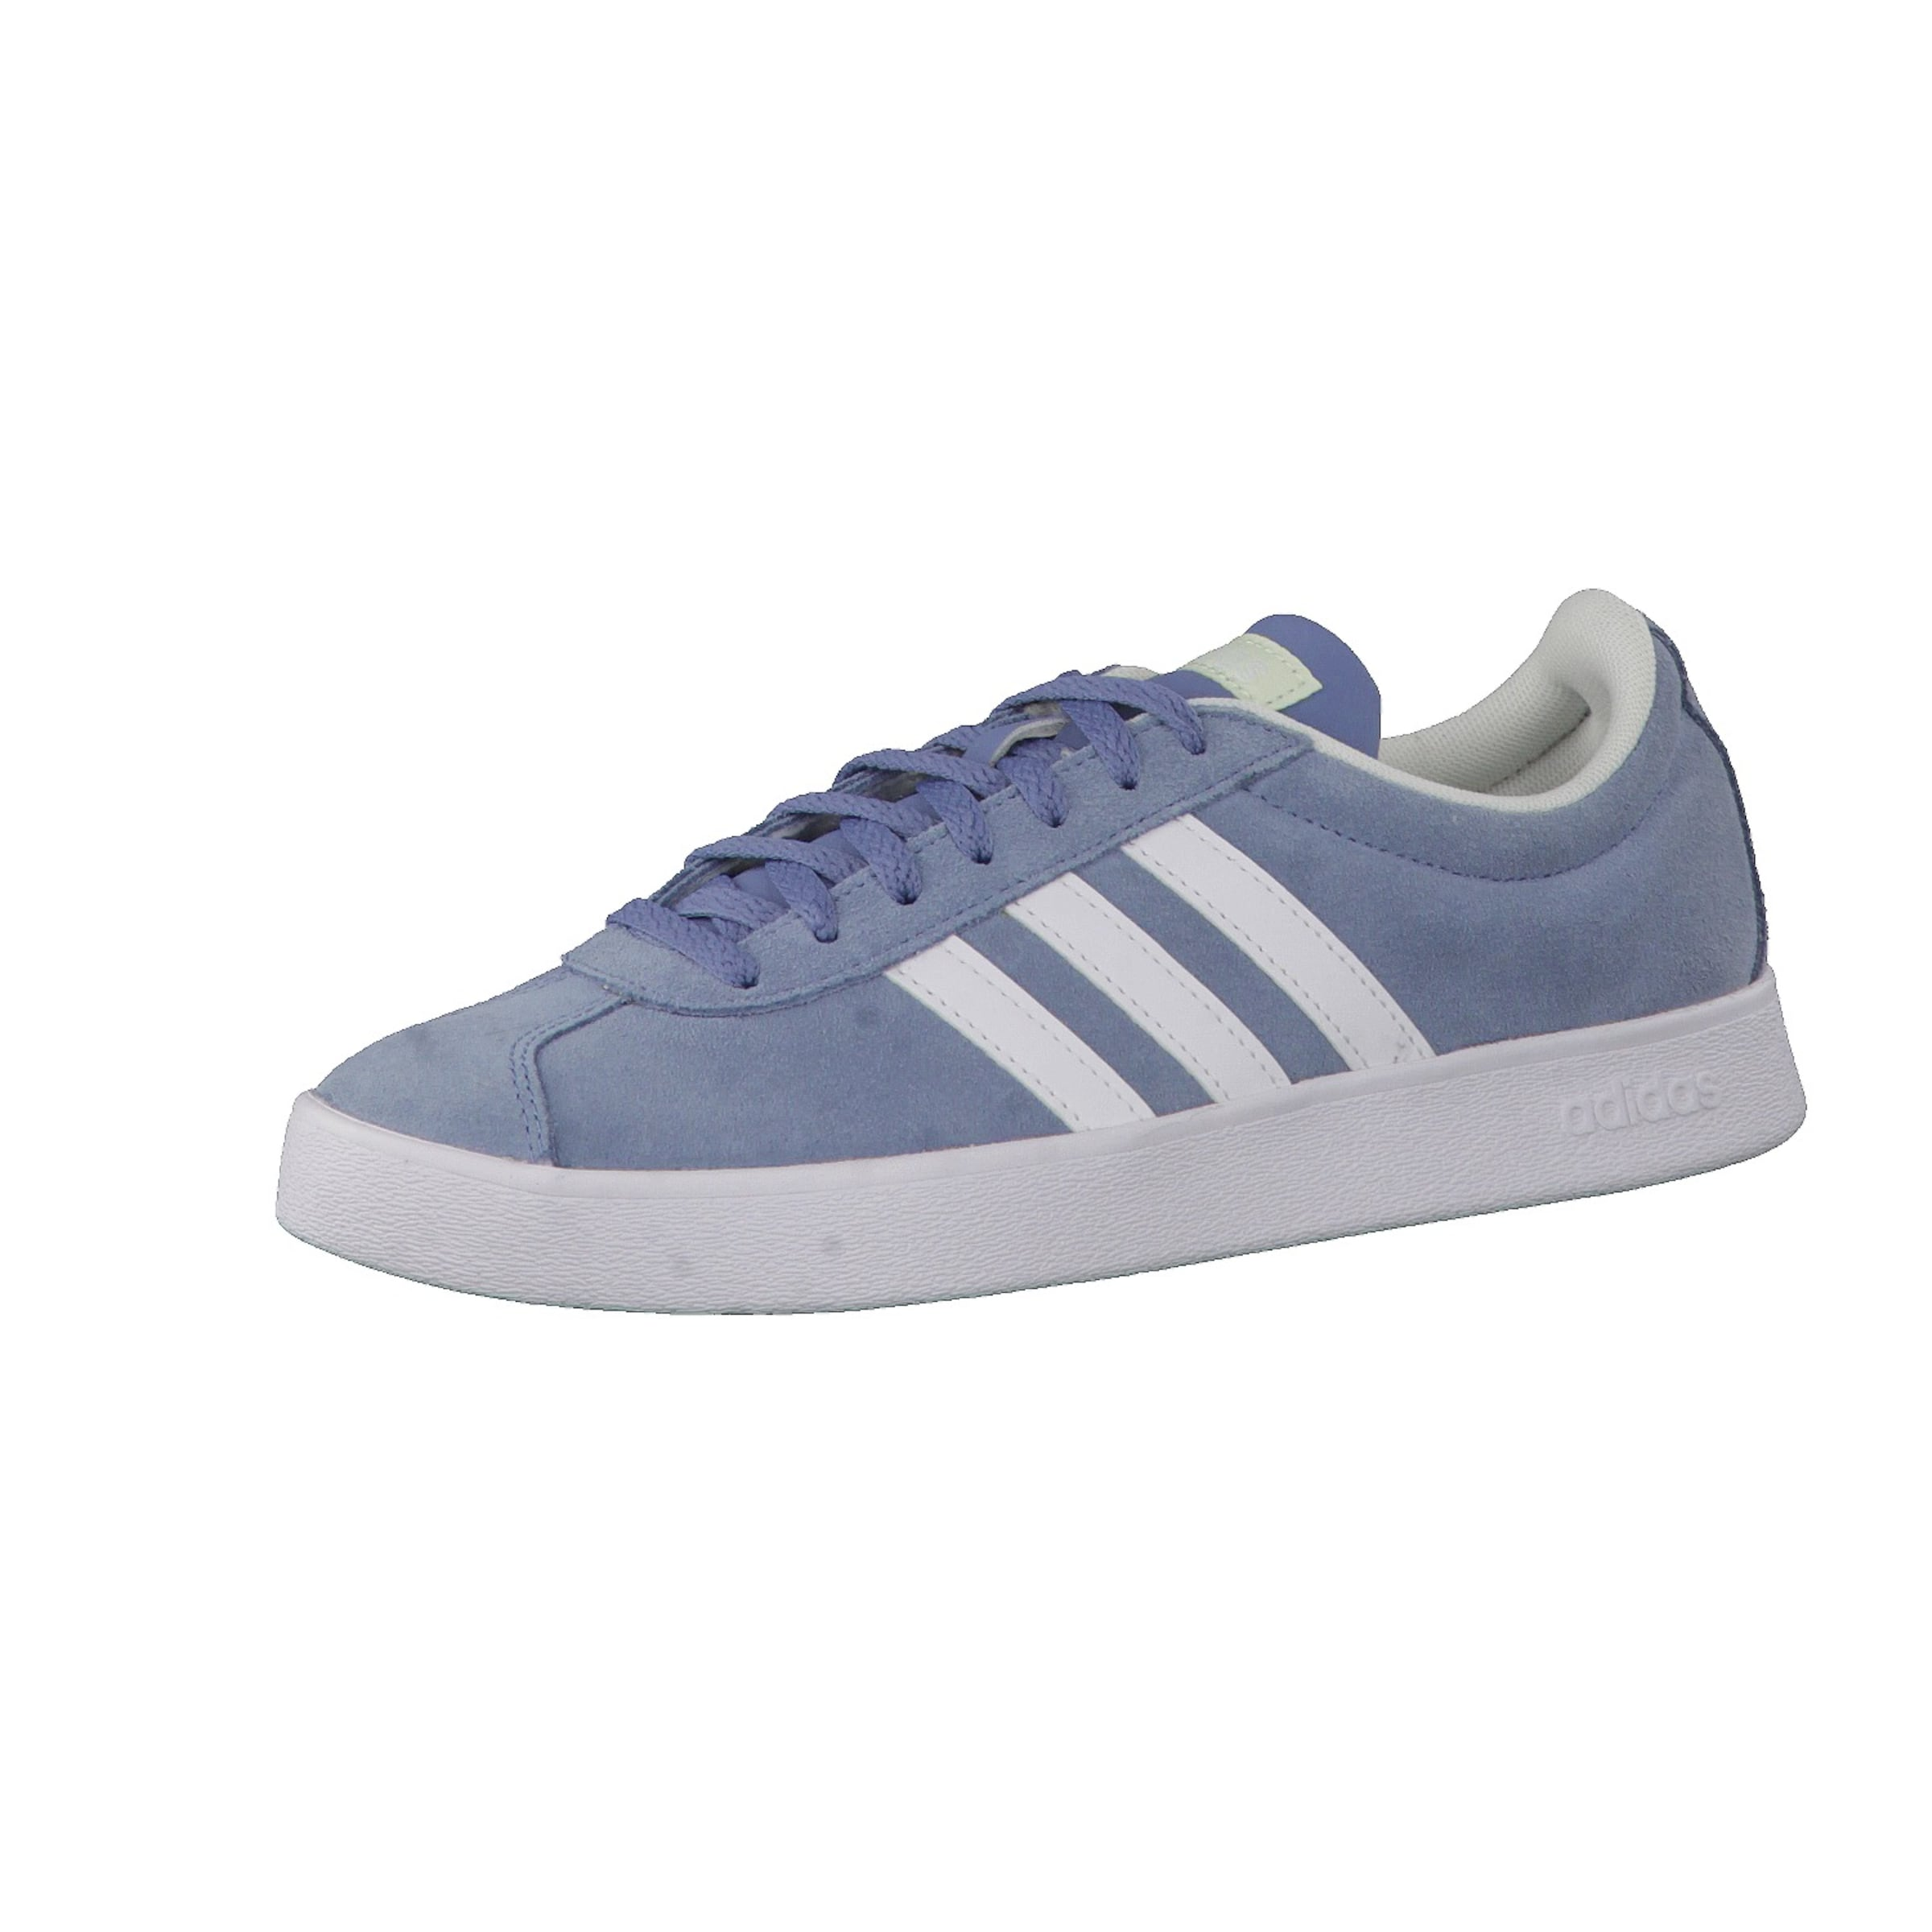 ADIDAS ORIGINALS | Turnschuhe VL Court 2.0